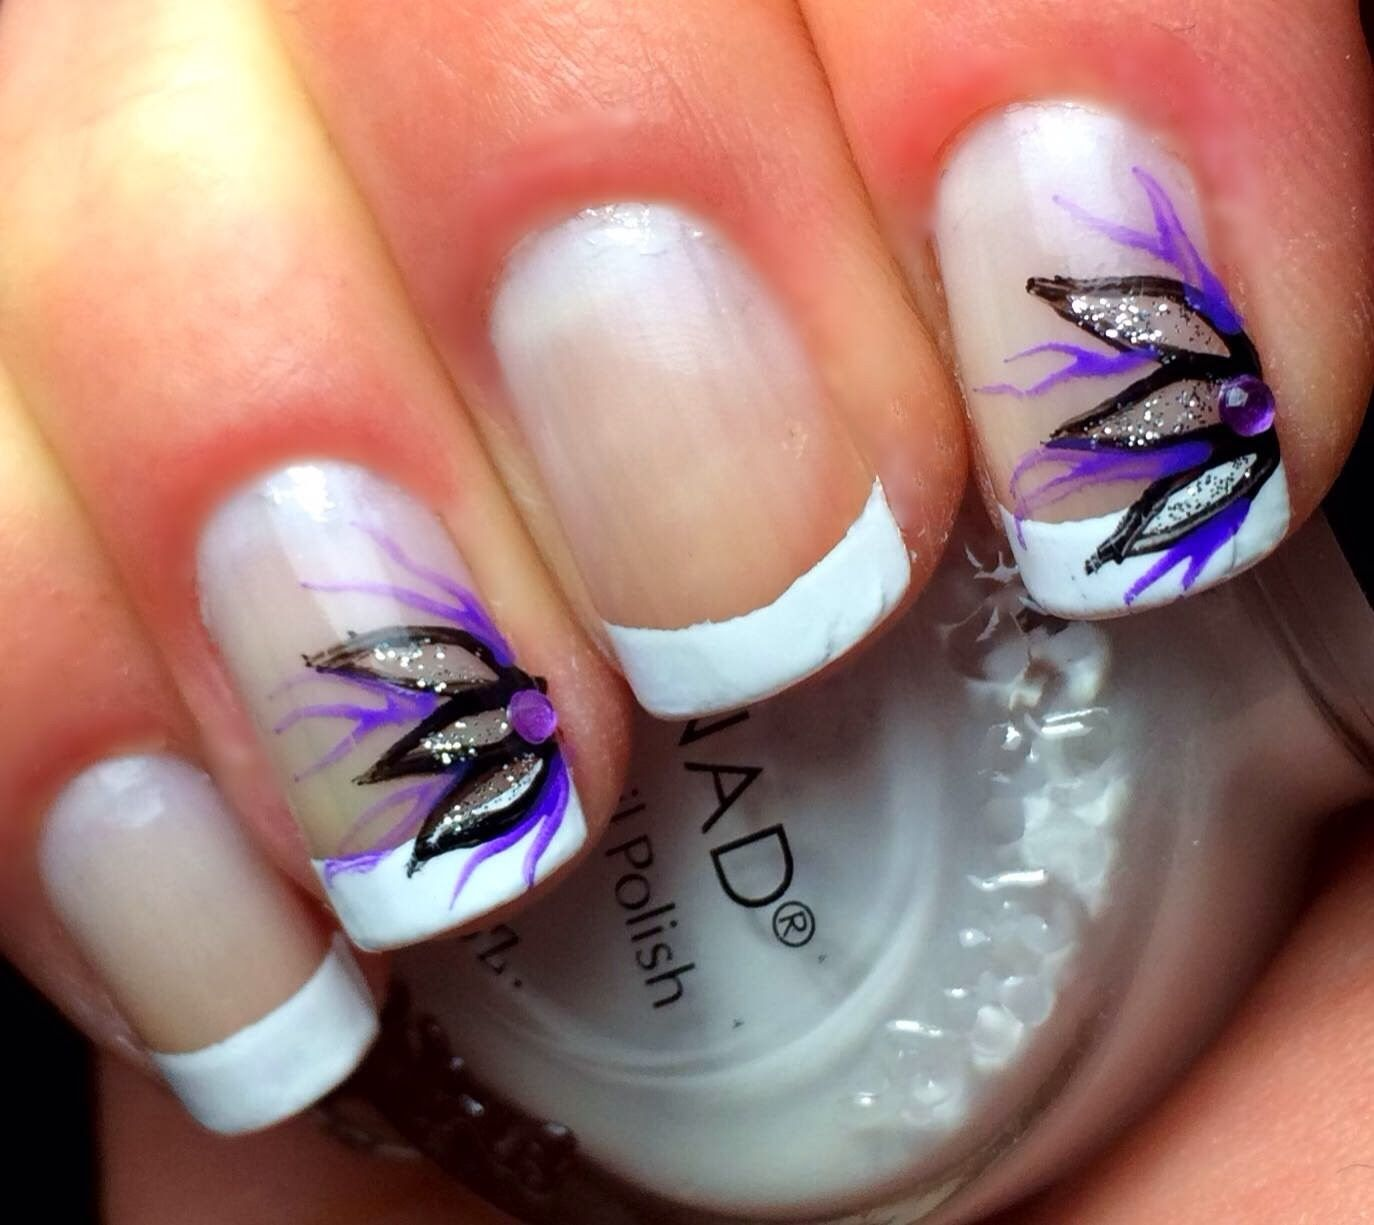 Frenchtip with purple/silver sparkley flower | French tip ...